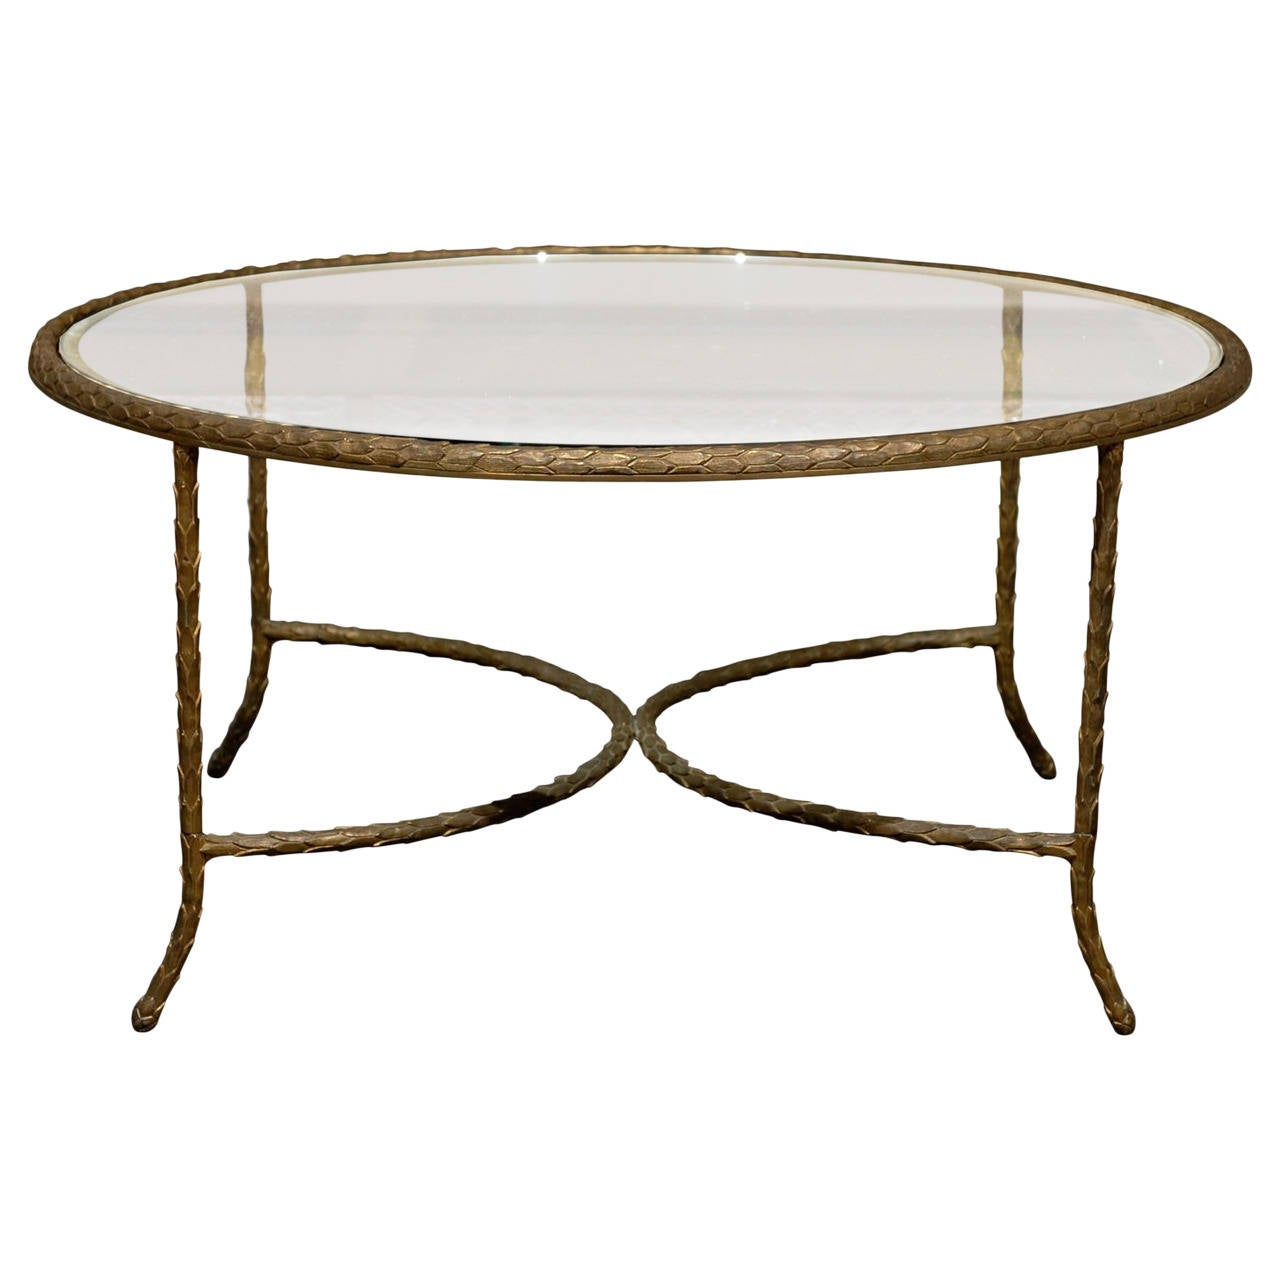 Round bronze cocktail table at 1stdibs Round cocktail table